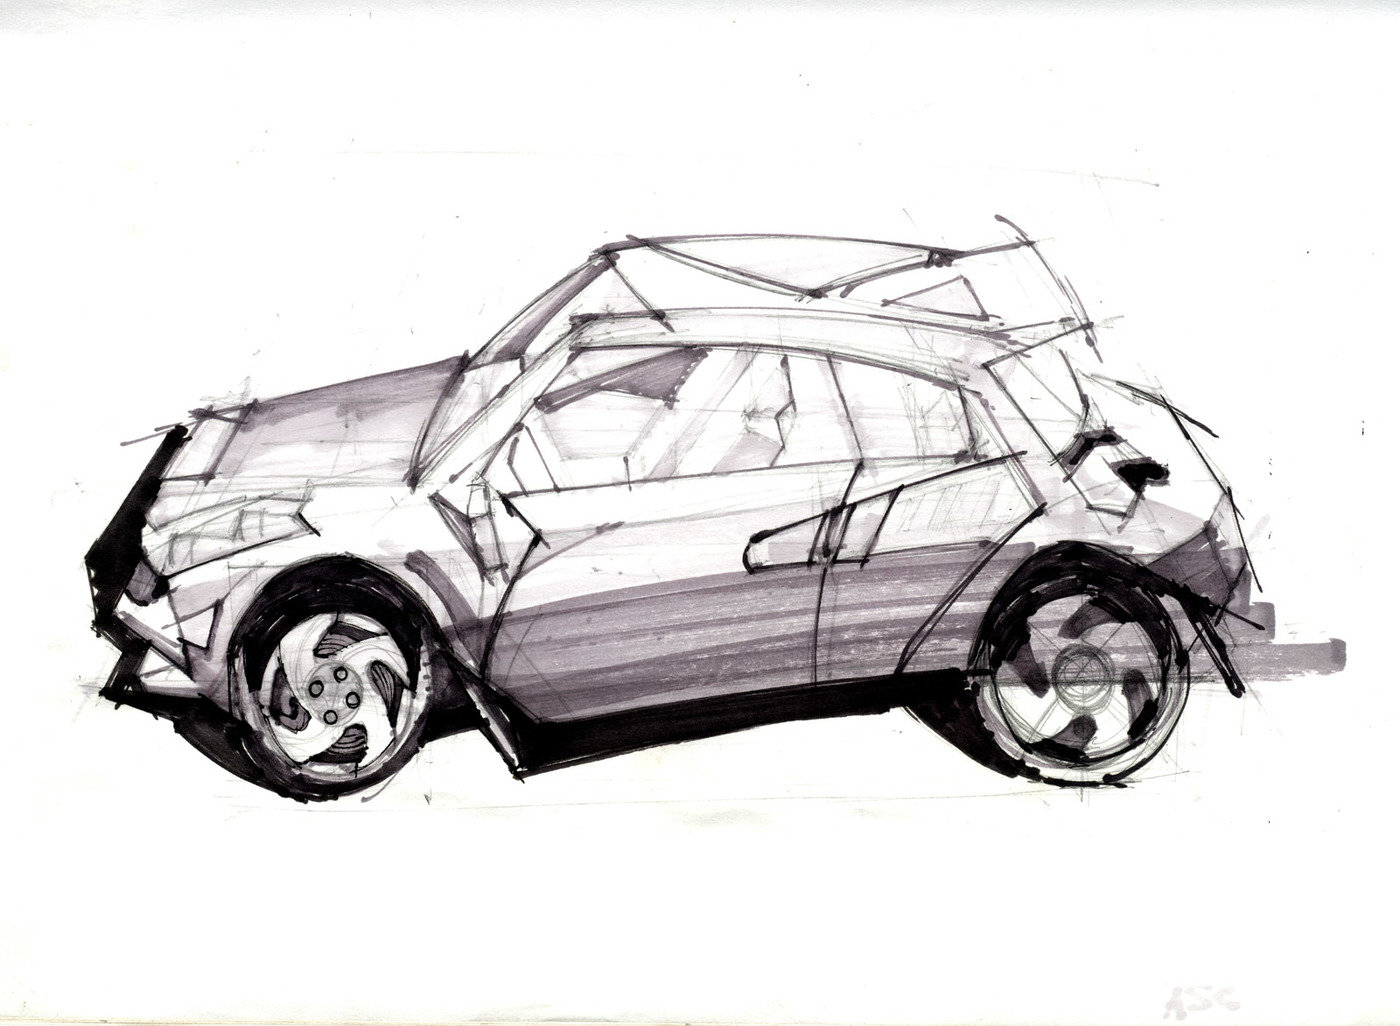 Product and Automotive Drawing by Sean Gordon at Coroflot.com